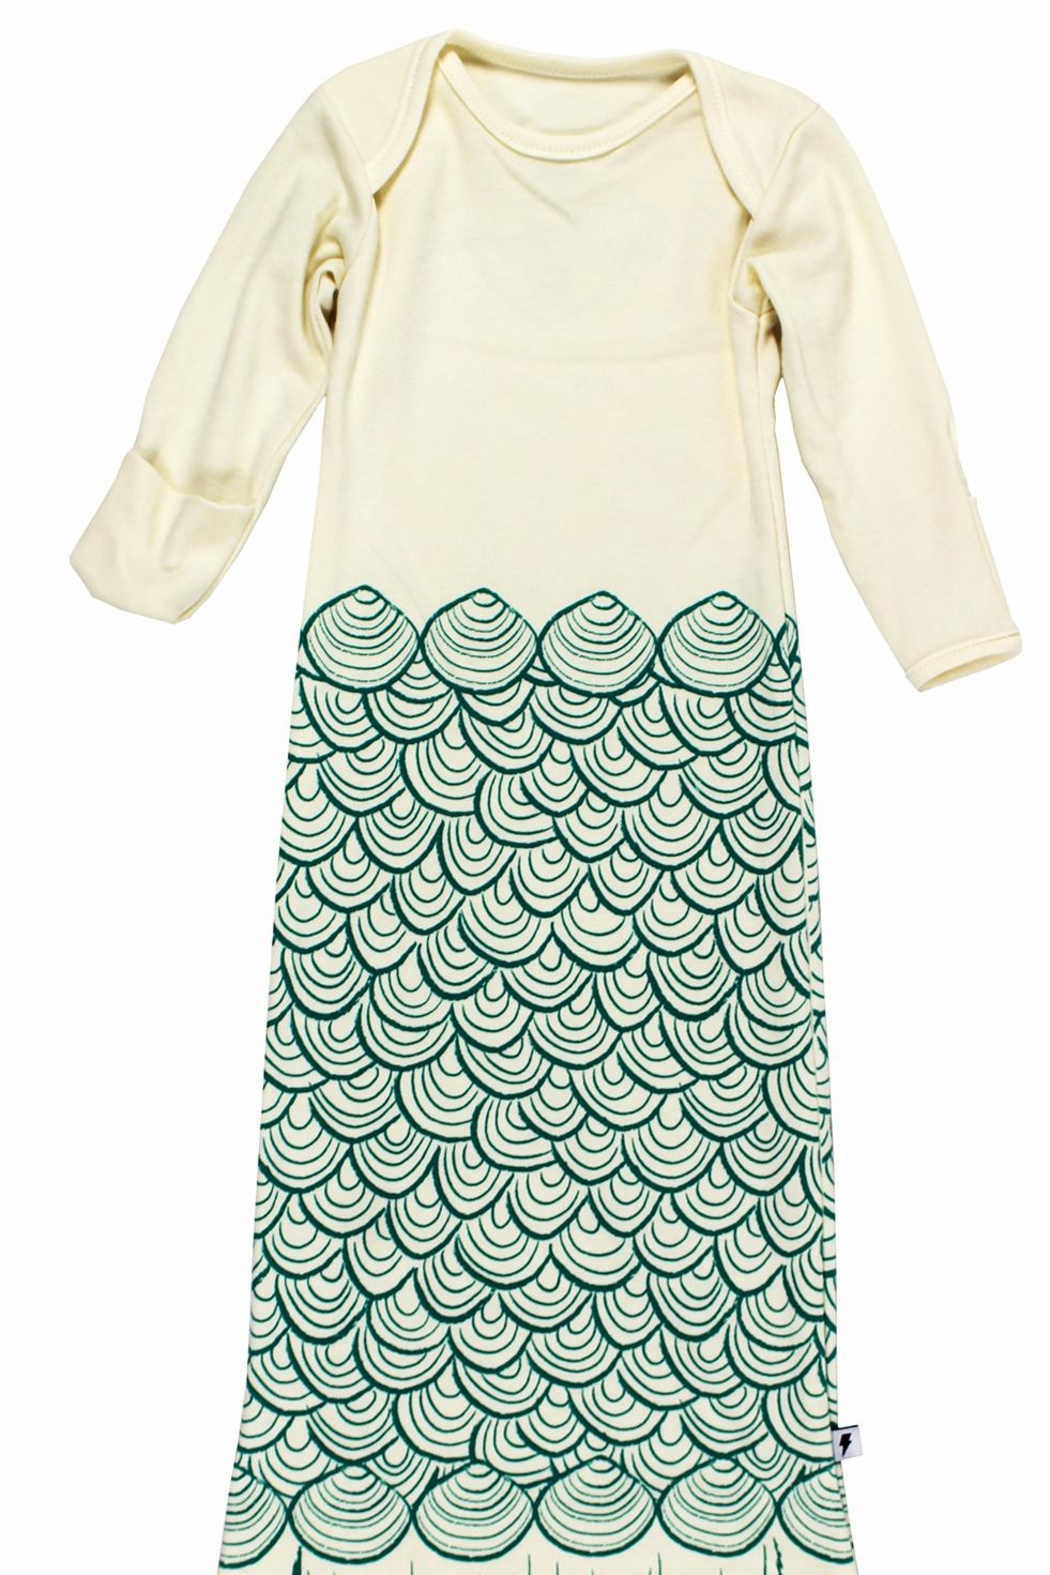 Electrik Kidz Knotted Gown - Mermaid - Front Full Image